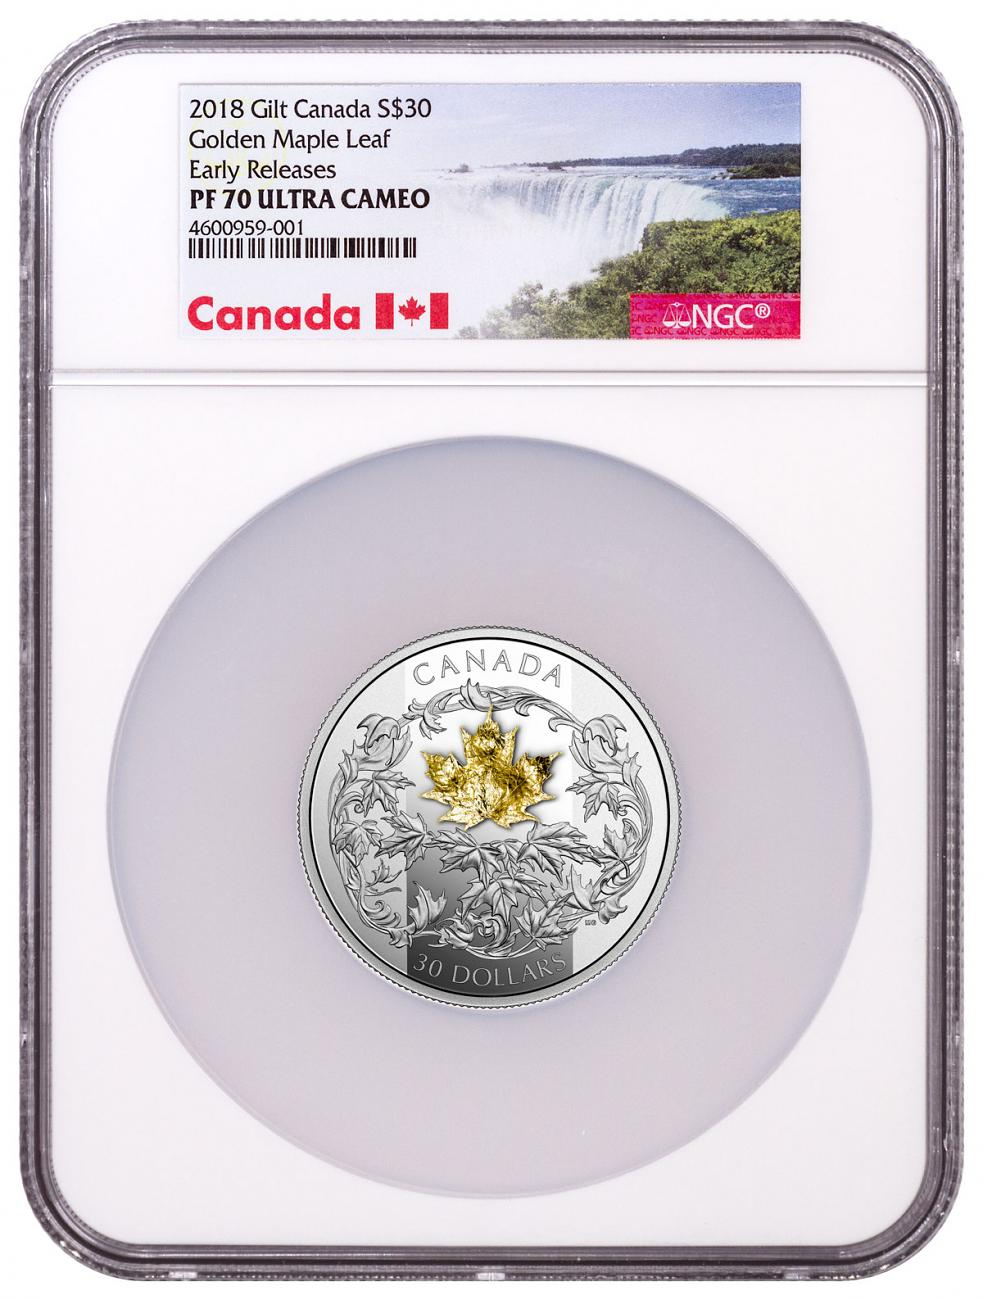 2018 Canada Golden Maple Leaf 2 oz Silver Gilt Proof $30 Coin NGC PF70 UC ER Exclusive Canada Label